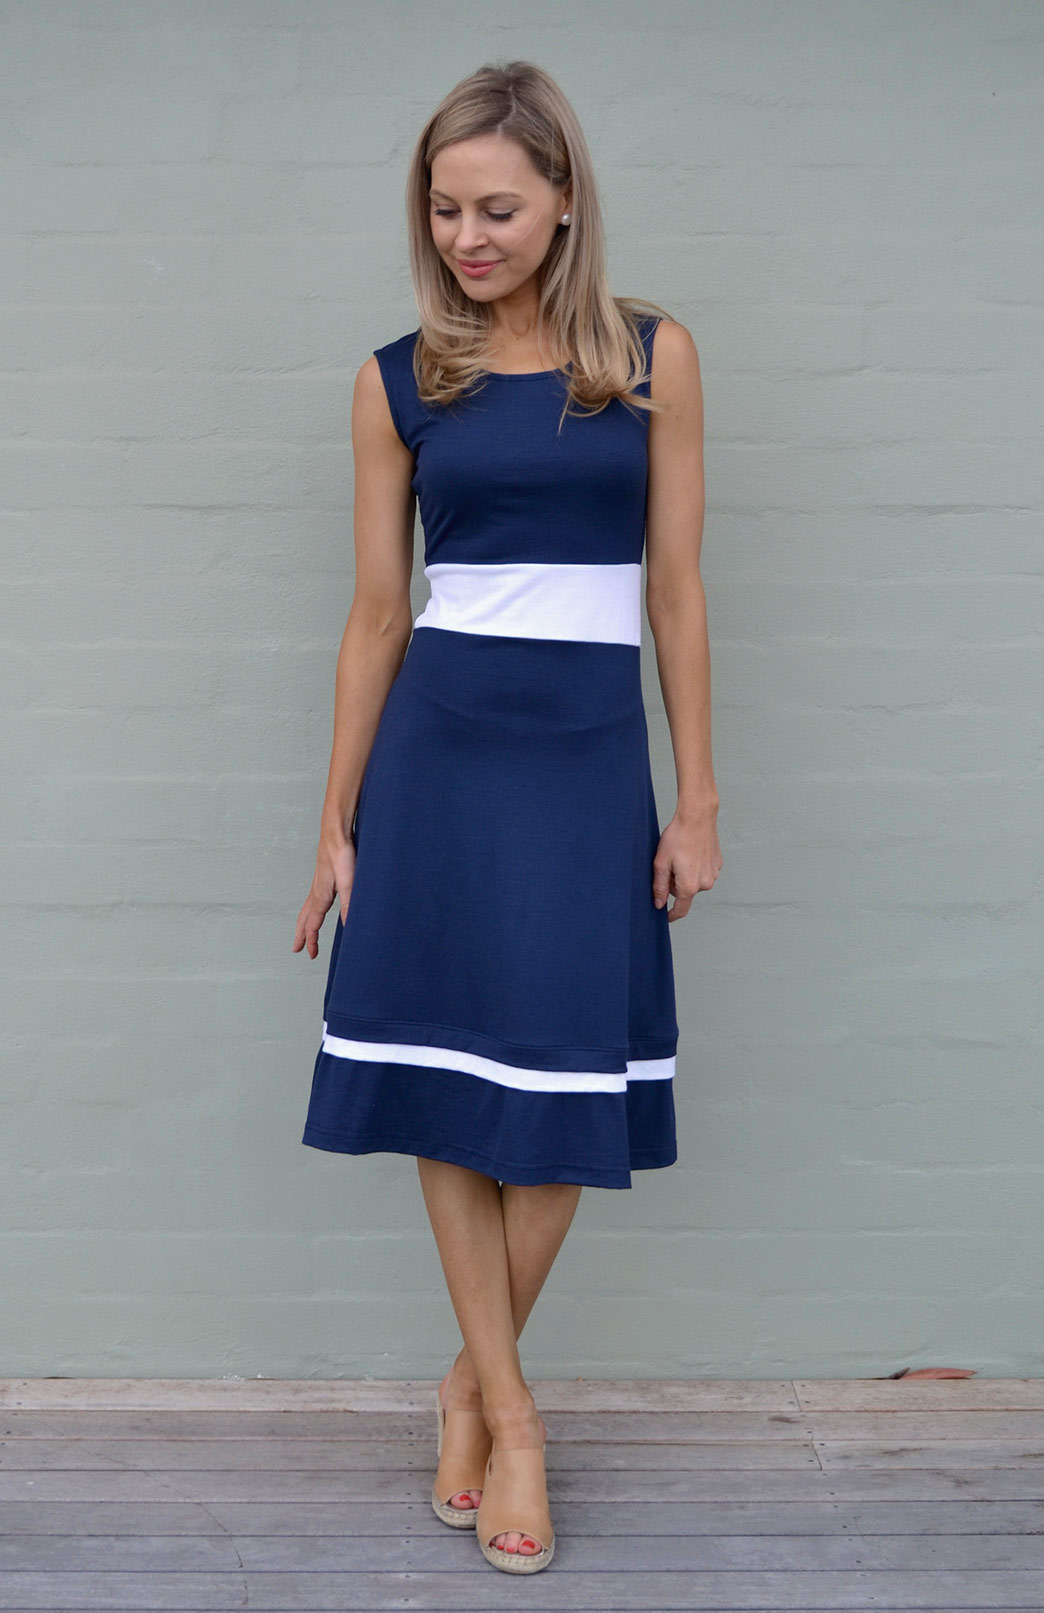 Indiana Dress - Women's Sleeveless Summer Blue Wool Dress with Cream Detailing and high neckline - Smitten Merino Tasmania Australia